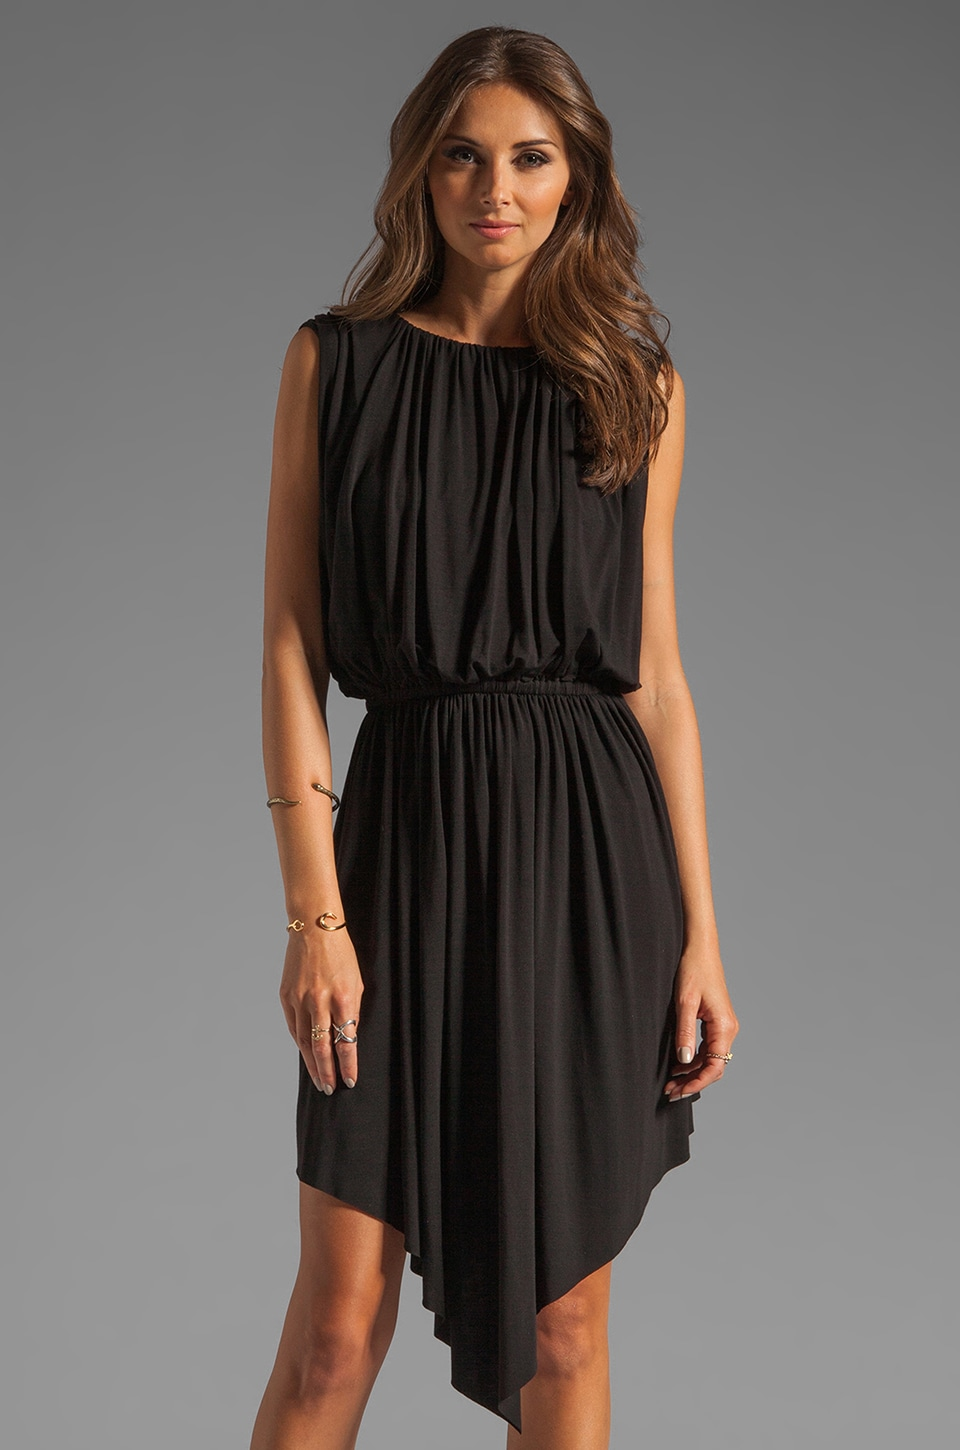 sen Jandra Dress in Black